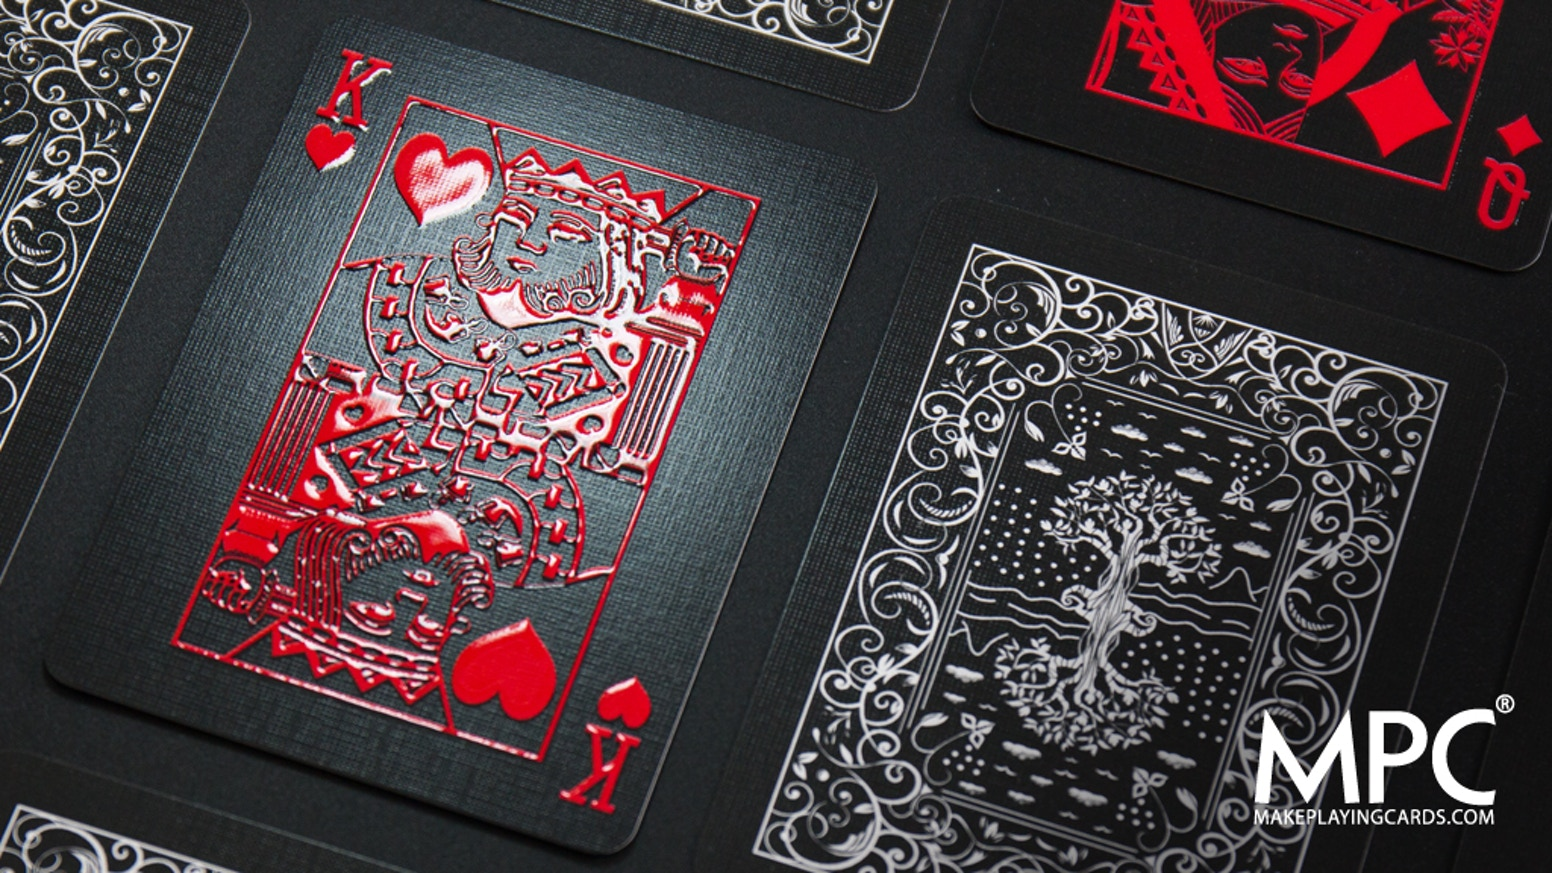 Touch and feel the artwork on a deck of playing cards produced using revolutionary state of the art raised gloss embossed technology.